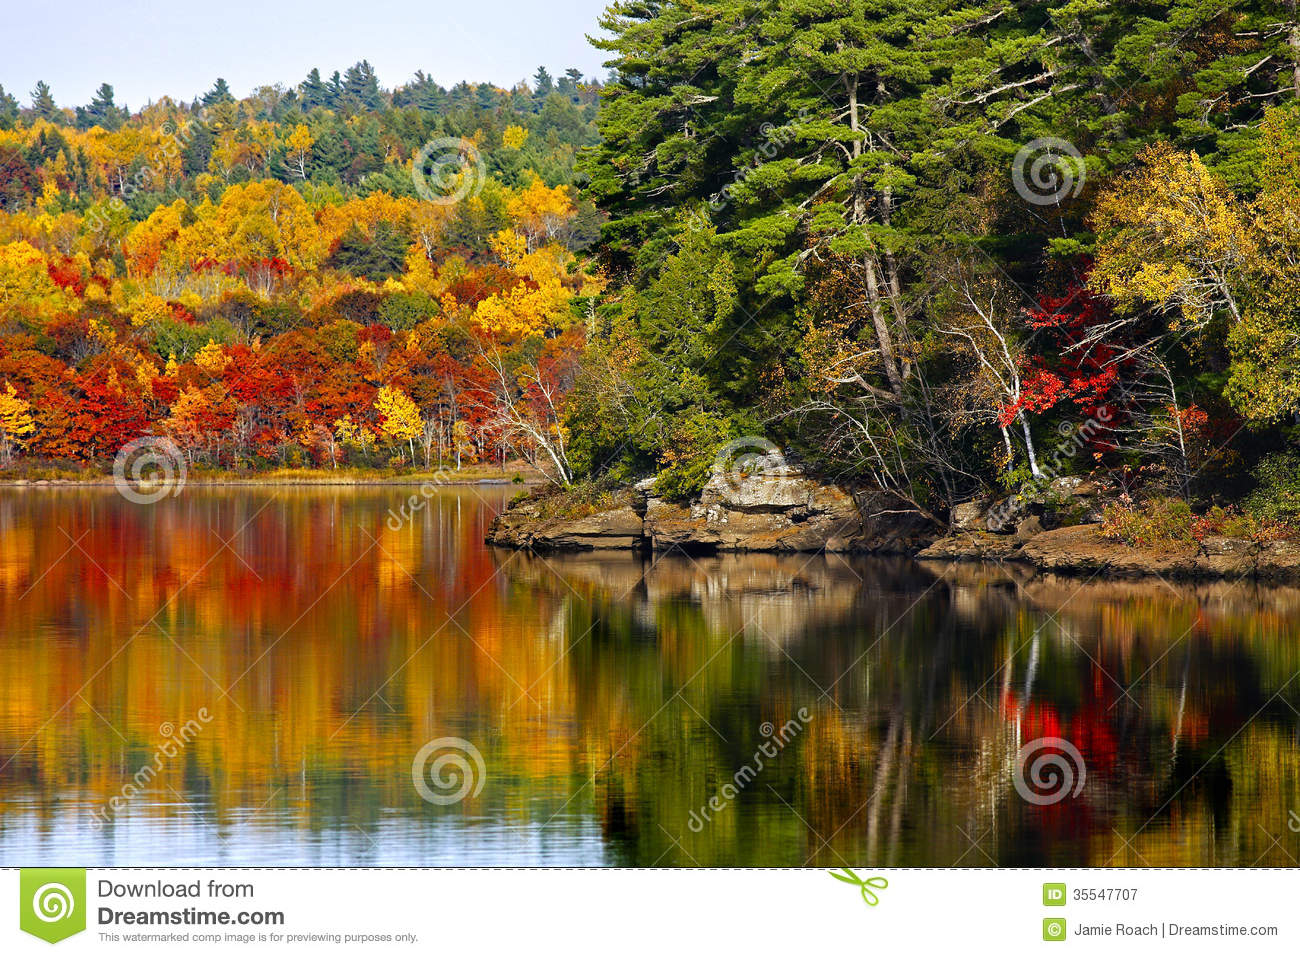 Fall Foliage Wallpaper Screensavers Fall Autumn Colors Water Reflection Royalty Free Stock